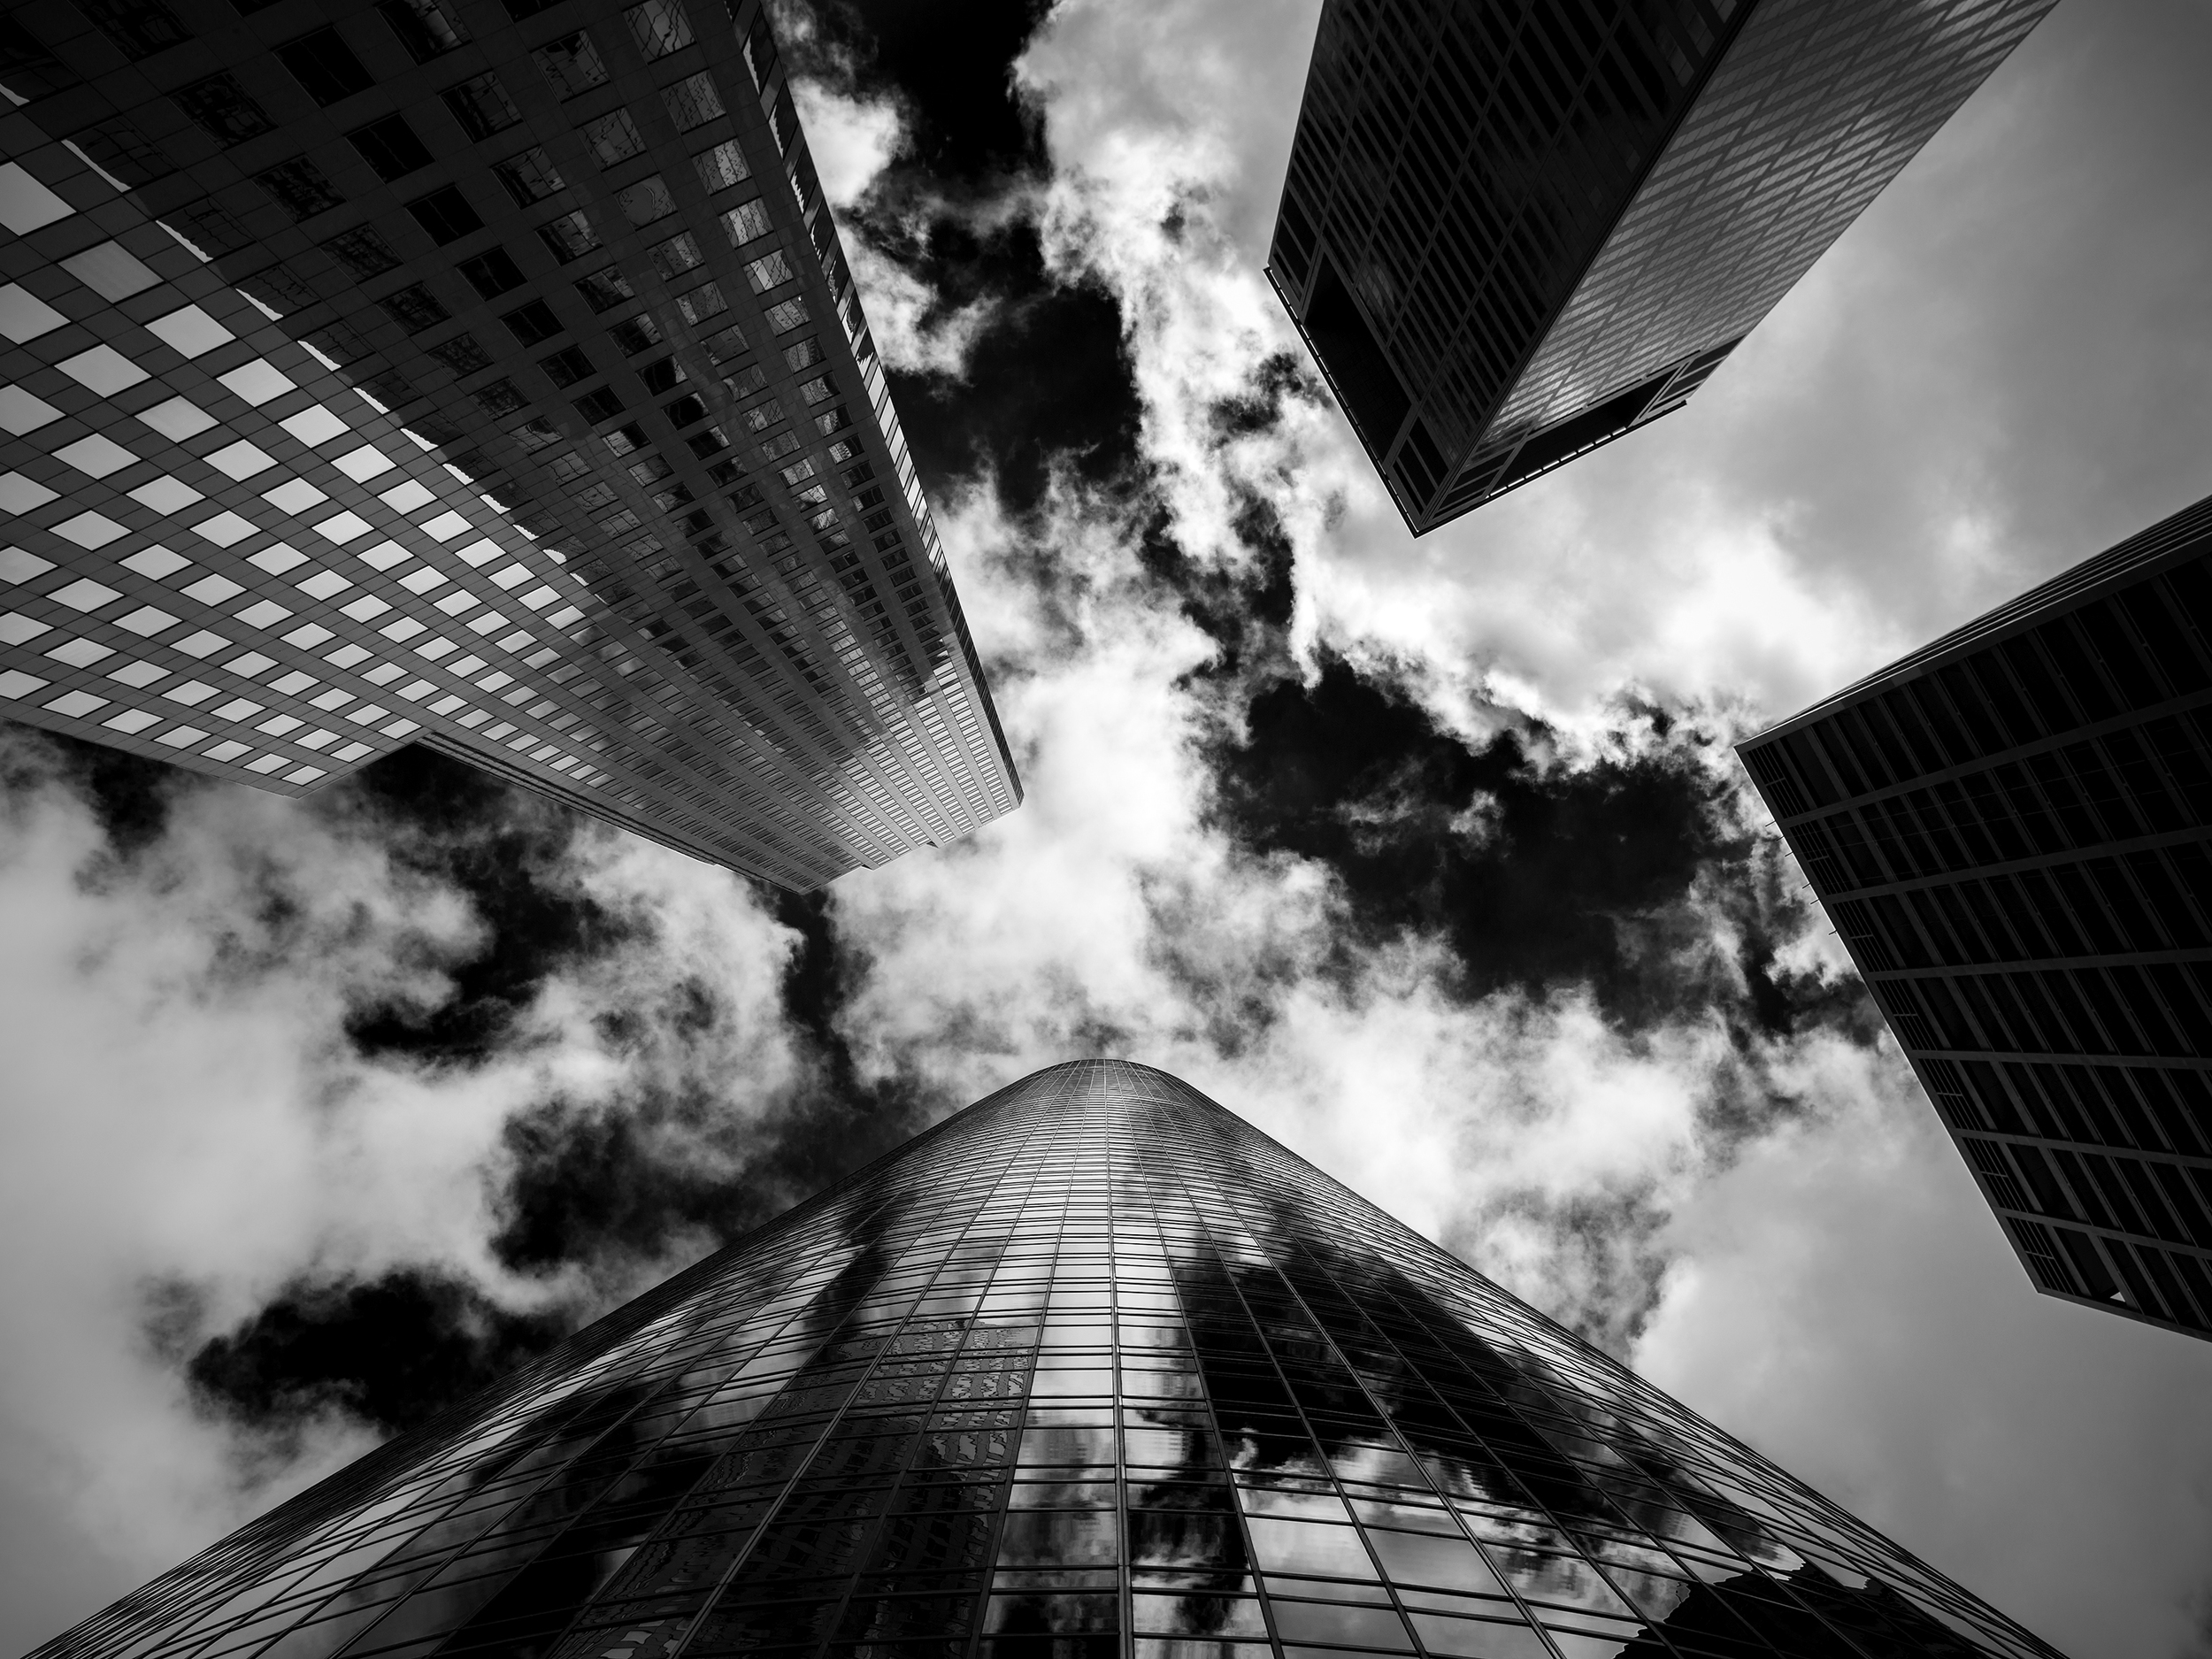 cityscapes5bw4x3small.jpg